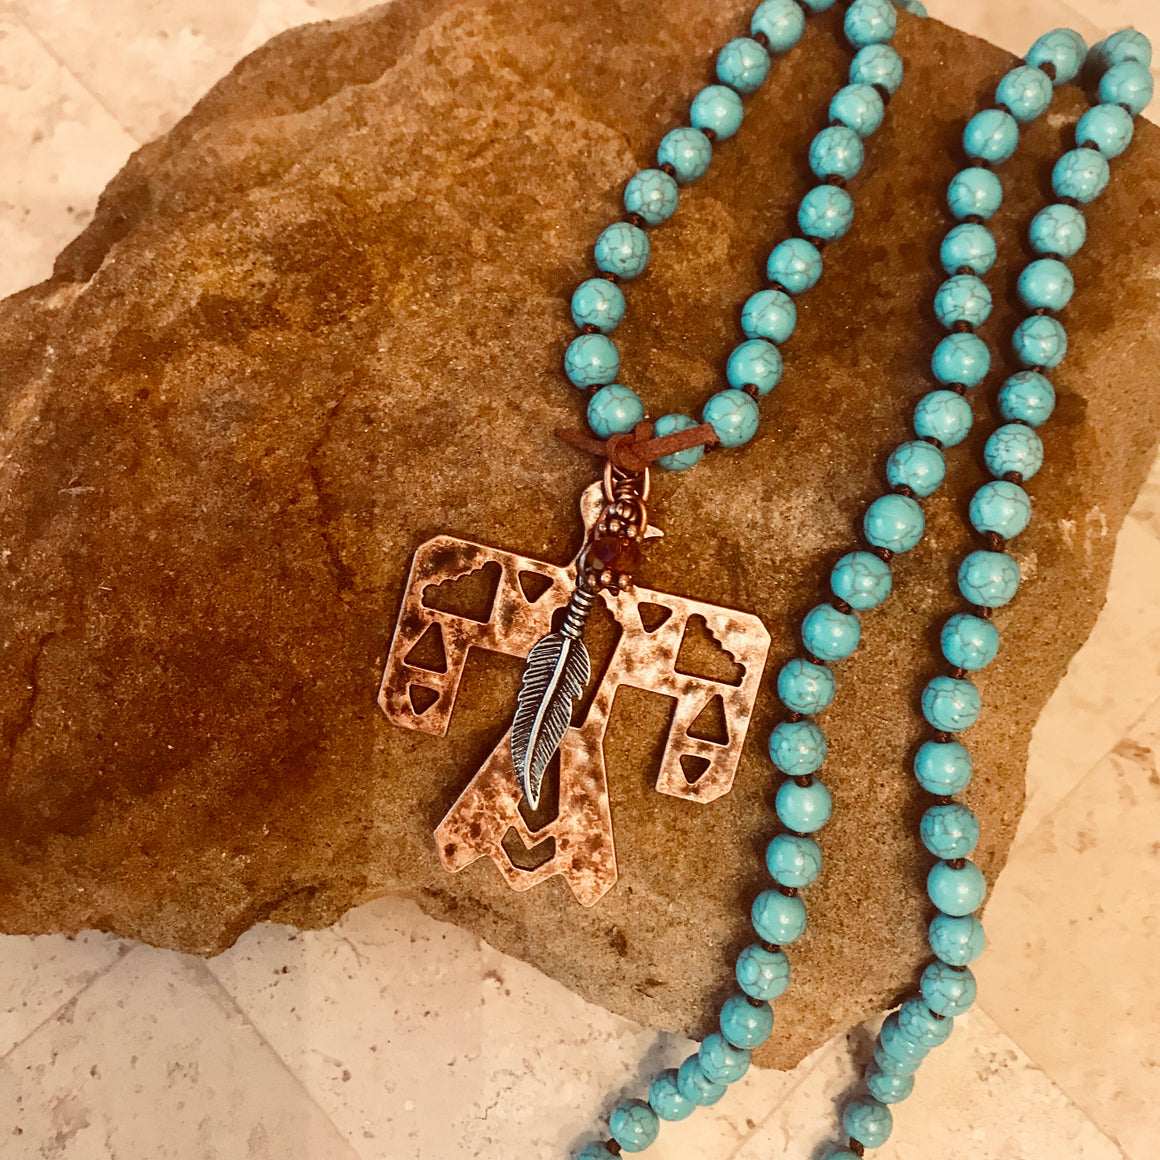 Copper Thunderbird Turquoise Bead Necklace